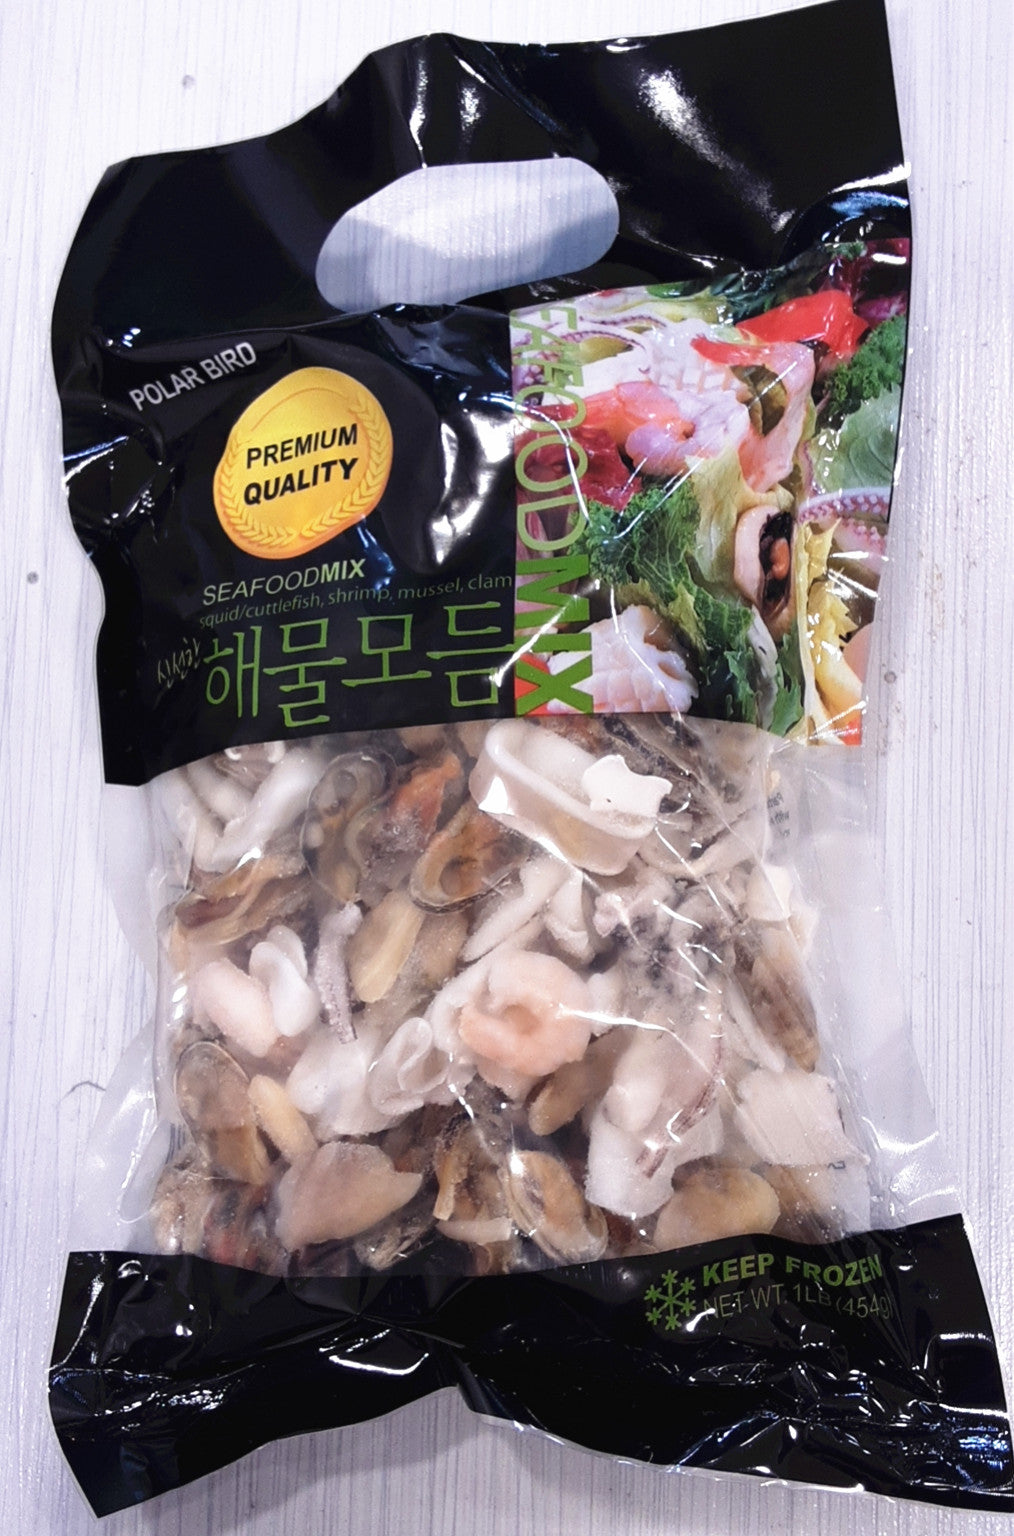 Frozen Seafood Mix 海鮮雜錦